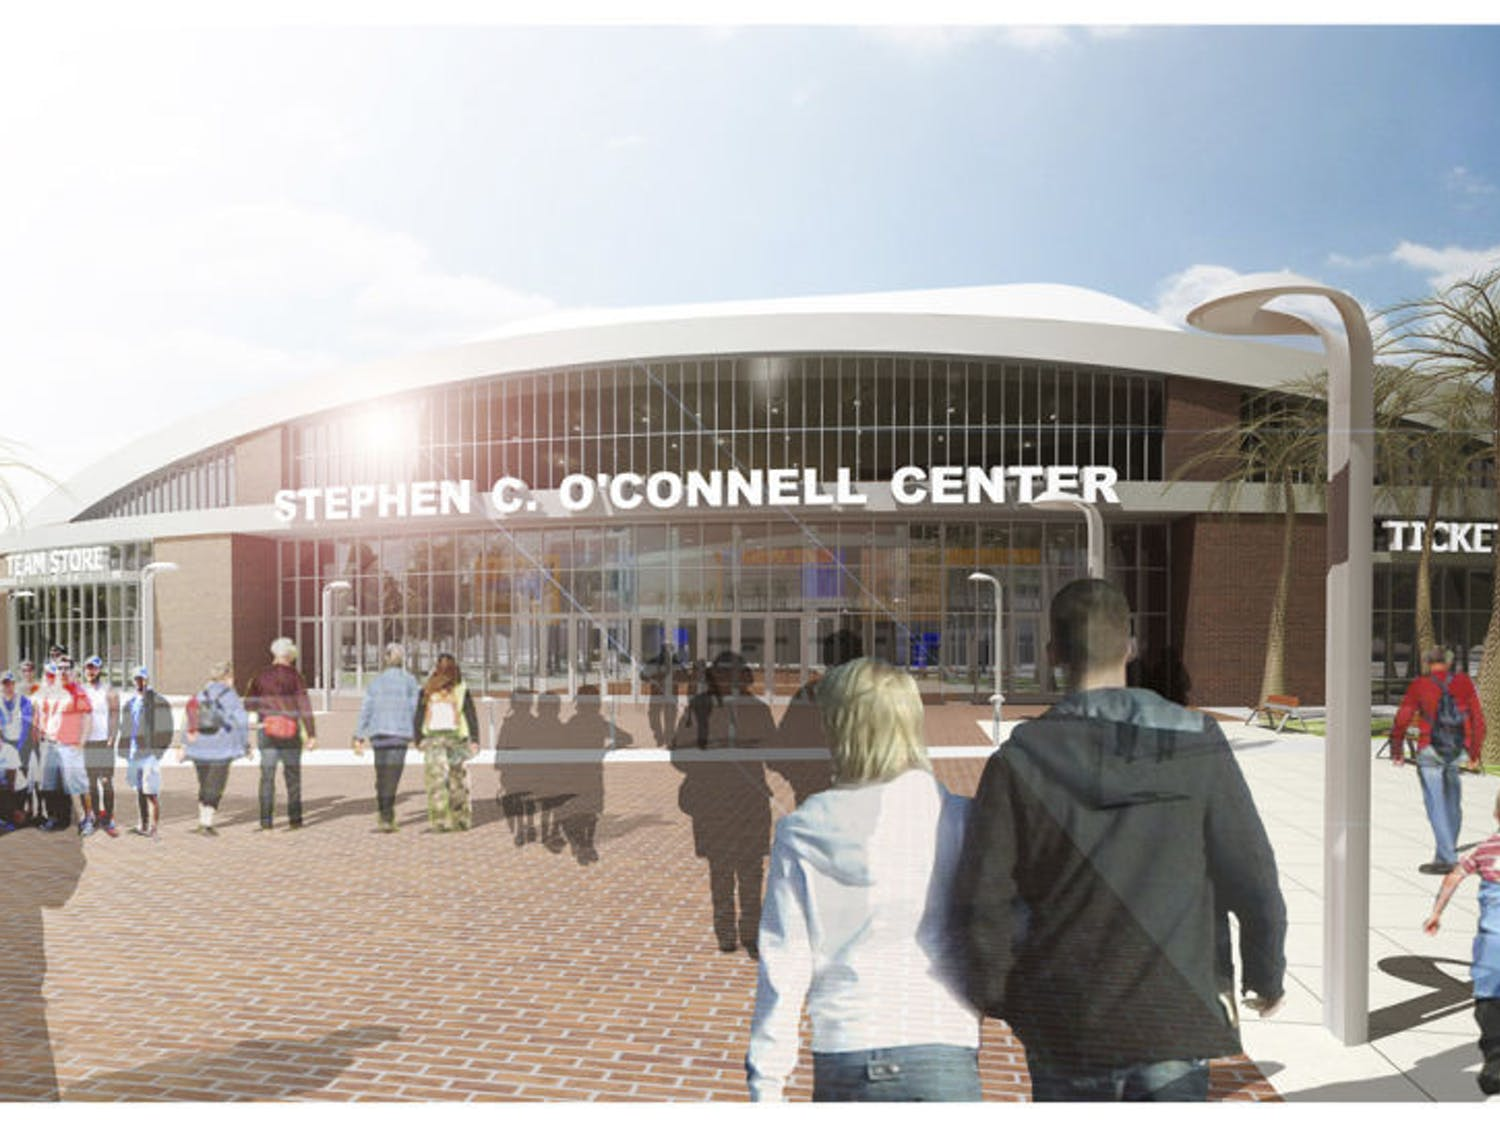 This is a rendering showing the main renovation expected of the O'Connell Center: a prominent new entrance facing the Heavener Football Complex.